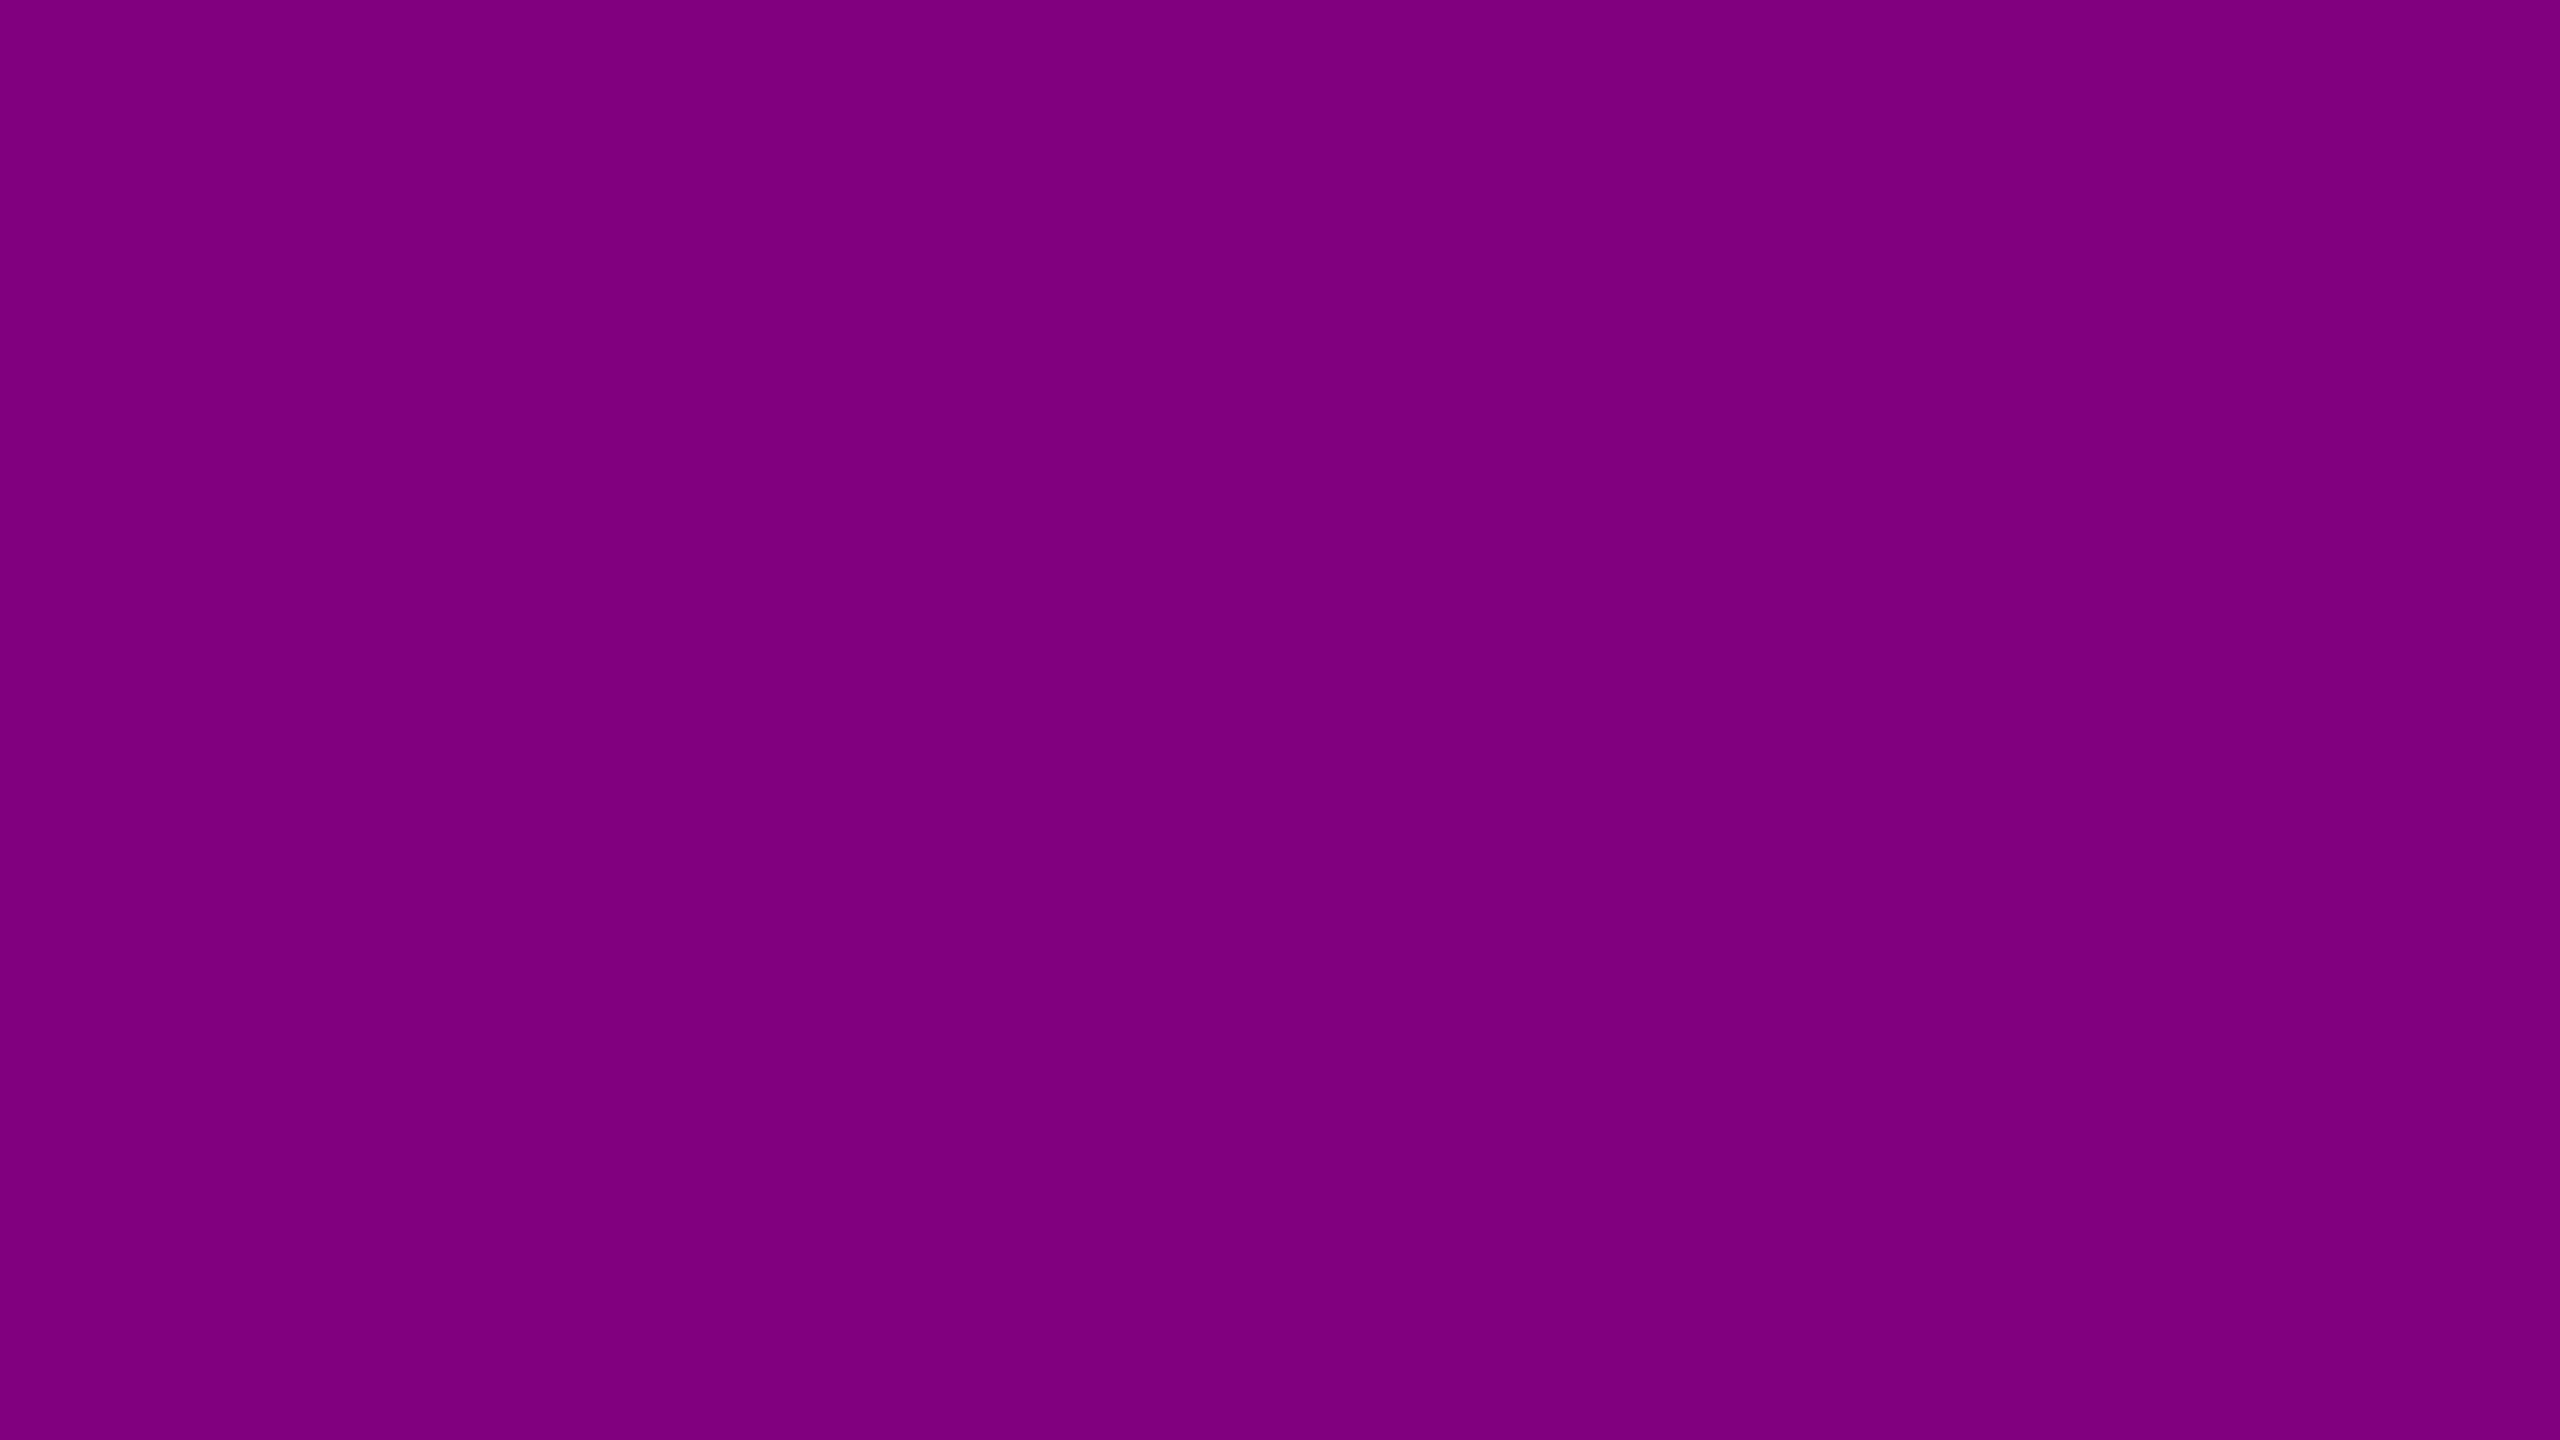 2560x1440 Purple Web Solid Color Background